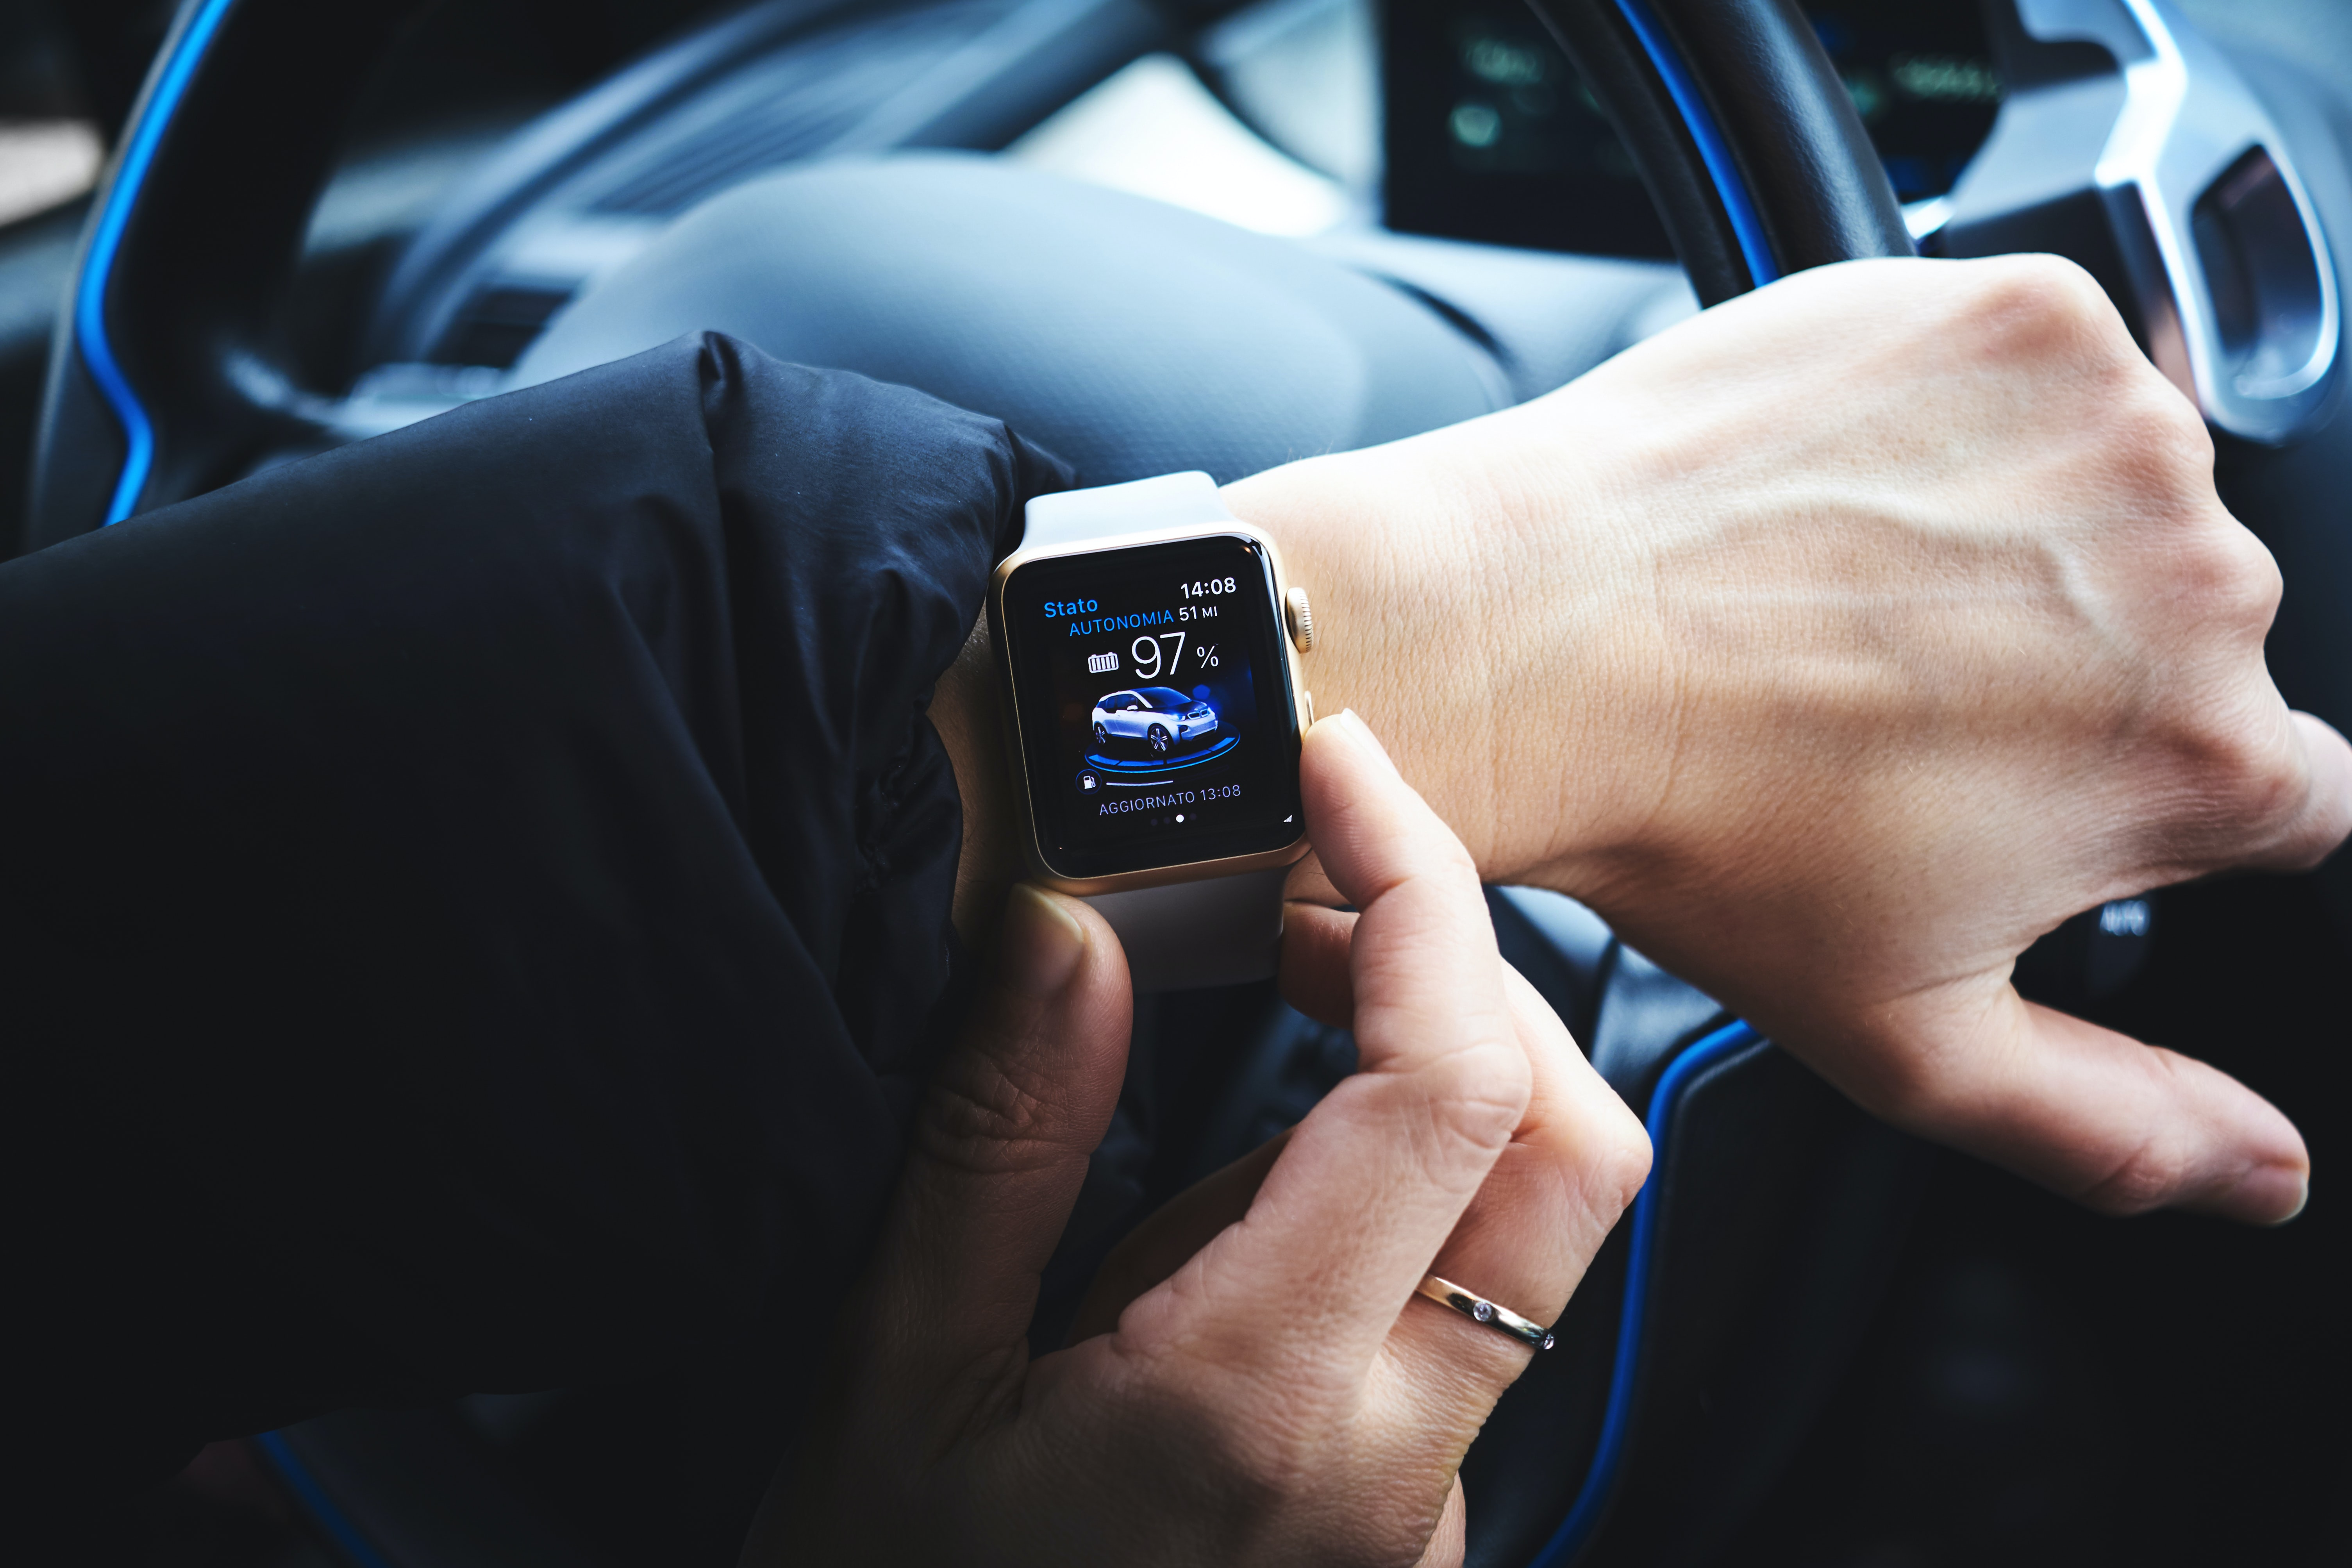 Driver with an Apple Watch; image by Luca Bravo, via Unsplash.com.